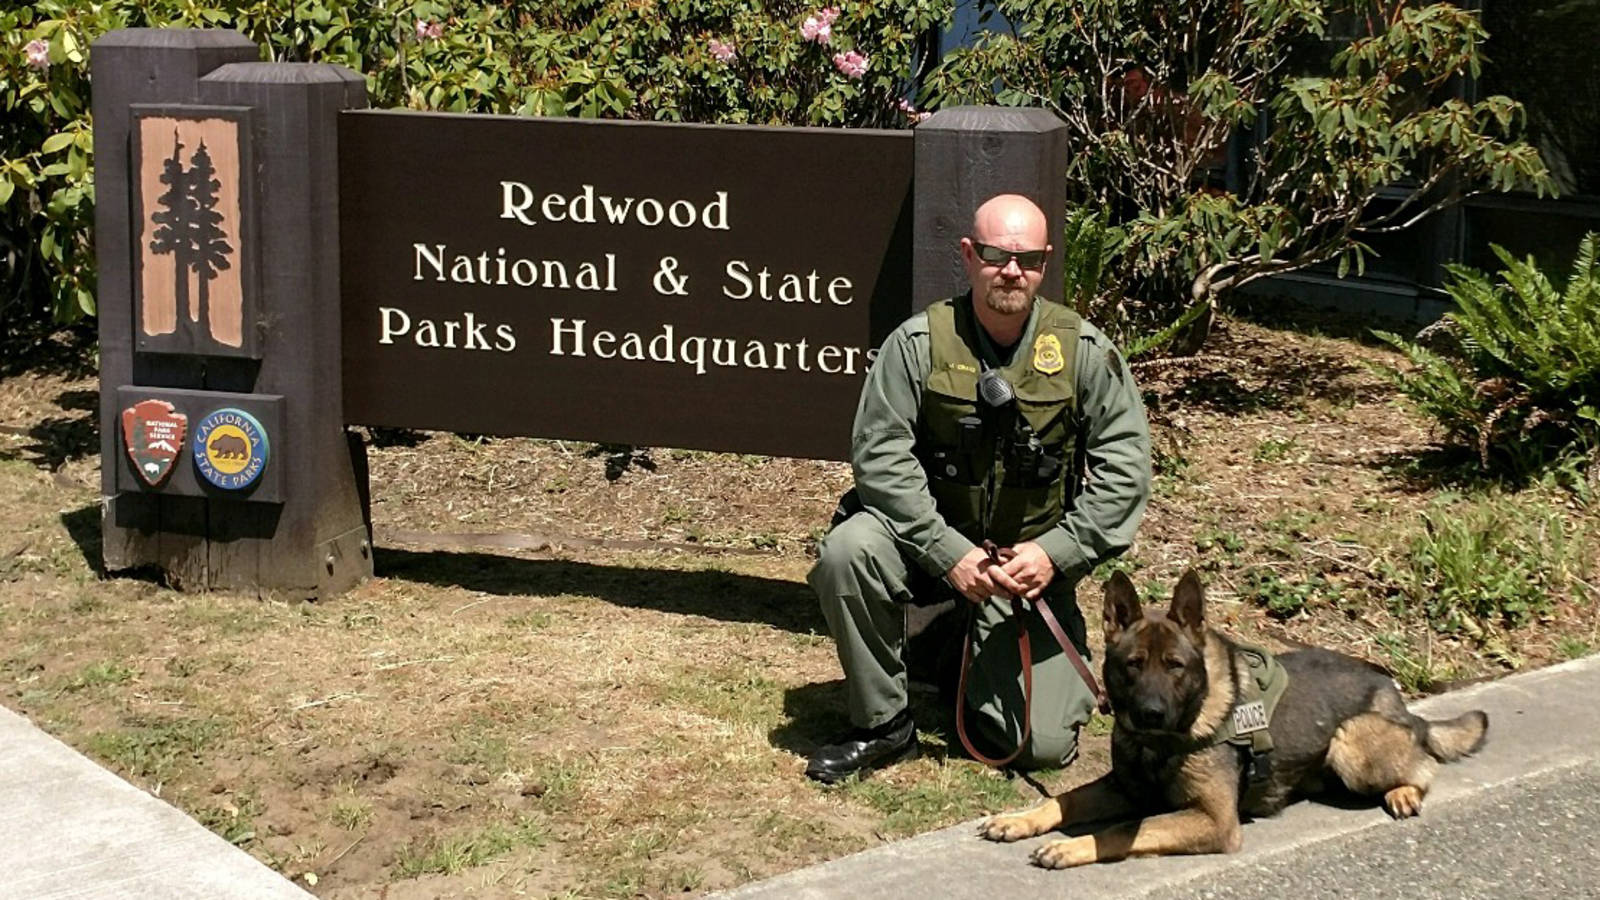 Working Like a Dog: See How Pups Help Park Rangers in These